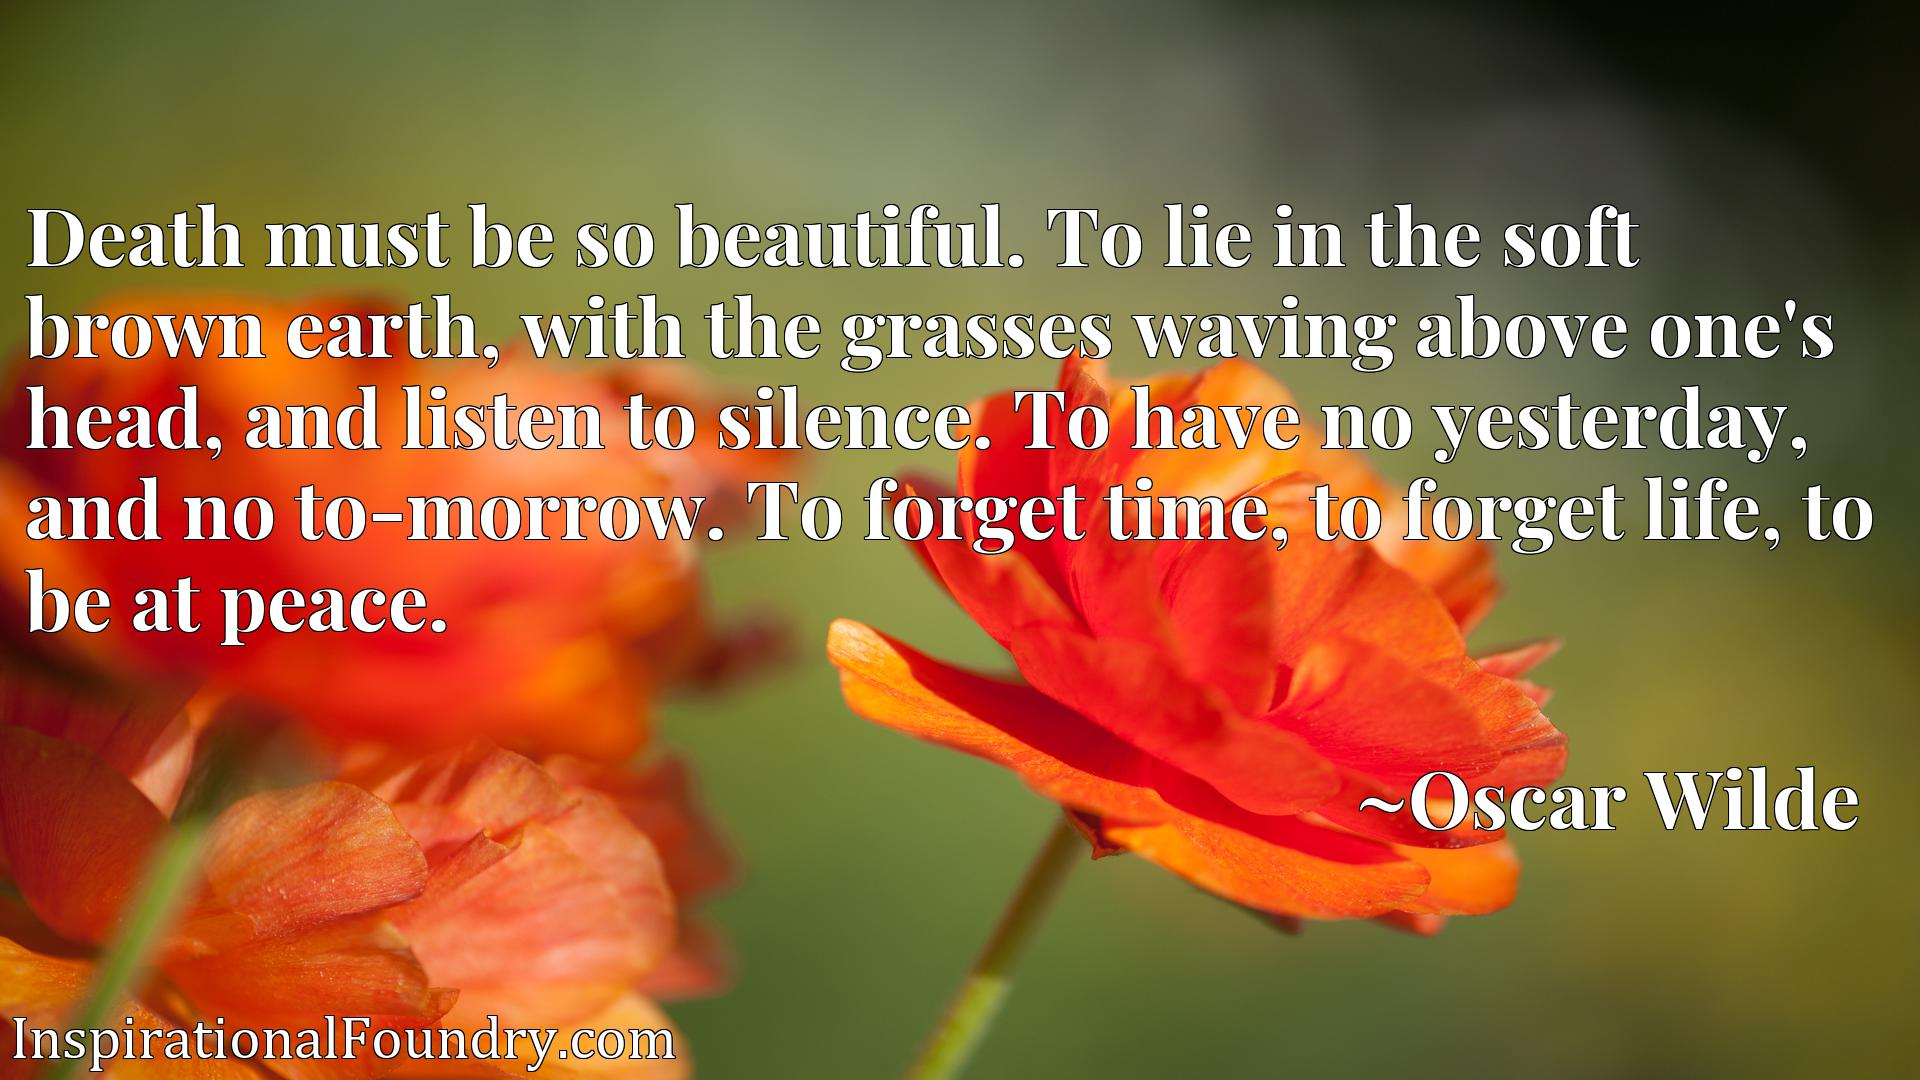 Death must be so beautiful. To lie in the soft brown earth, with the grasses waving above one's head, and listen to silence. To have no yesterday, and no to-morrow. To forget time, to forget life, to be at peace.